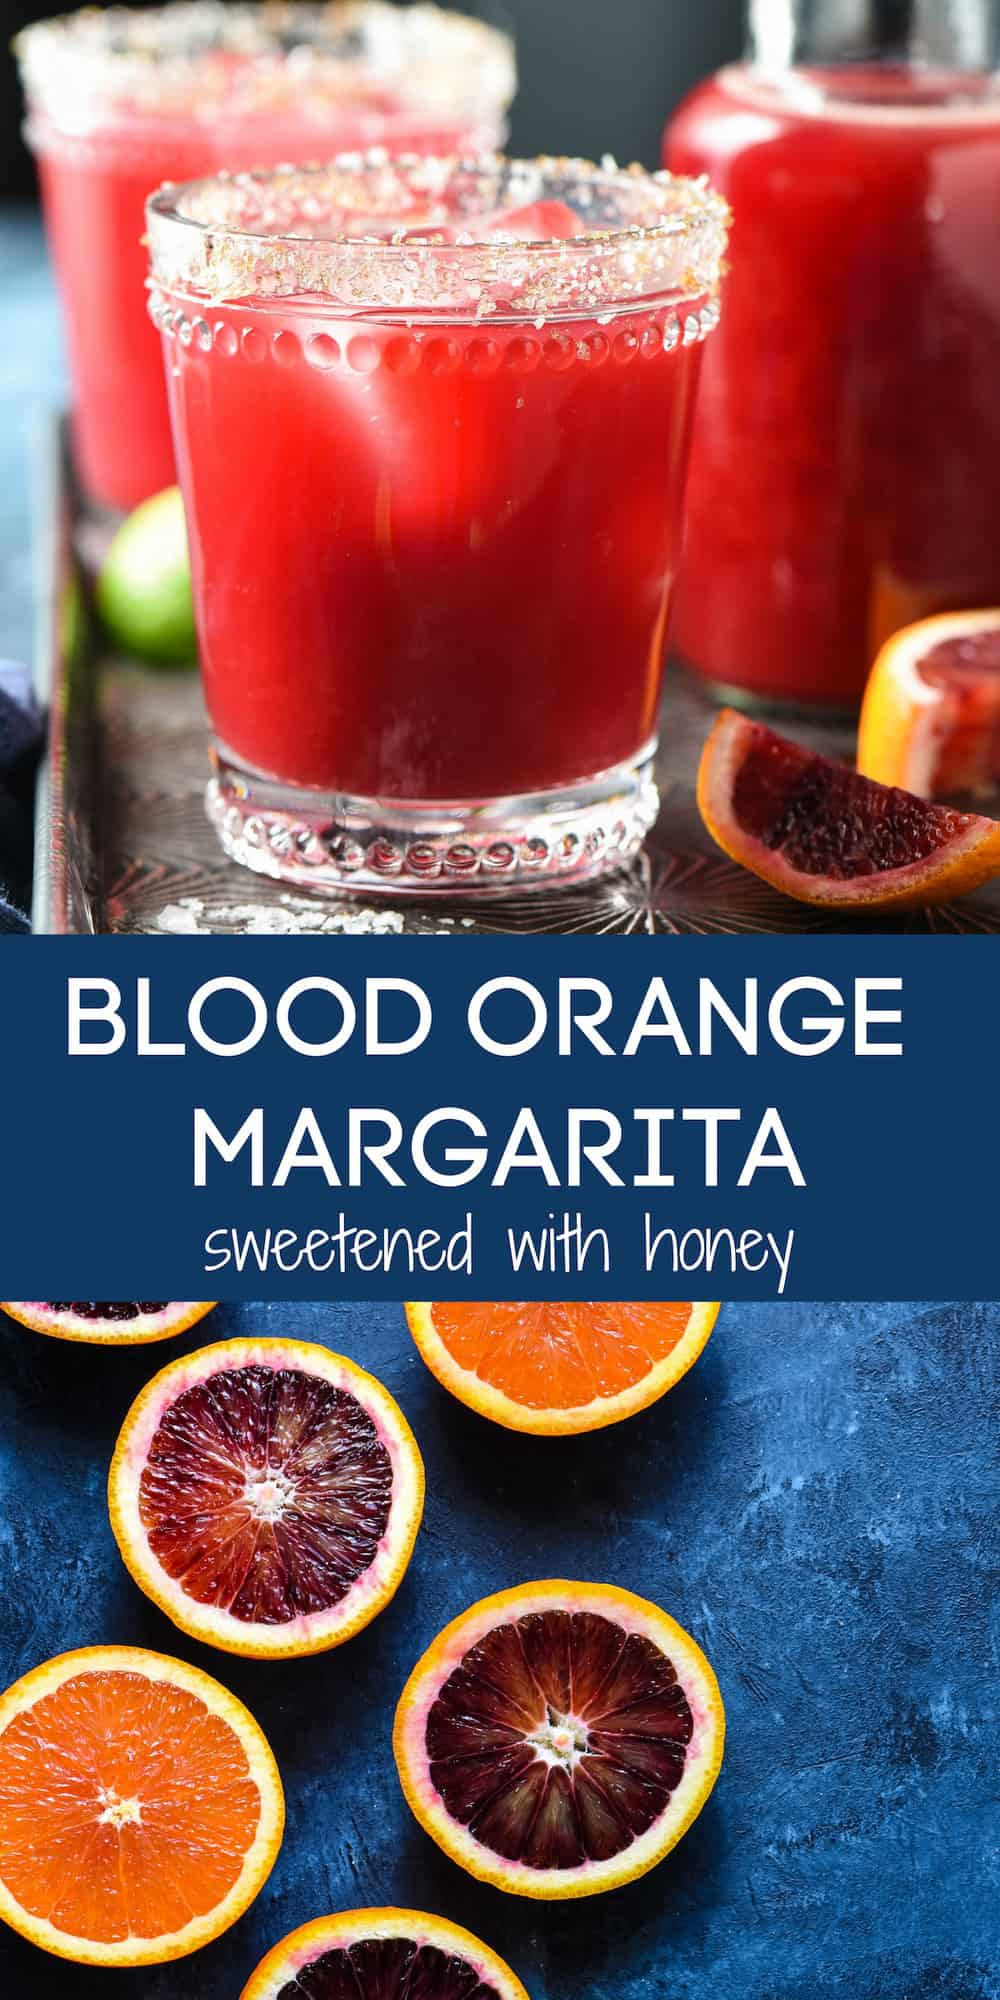 Collage of images of margaritas and cut winter citrus with overlay BLOOD ORANGE MARGARITA sweetened with honey